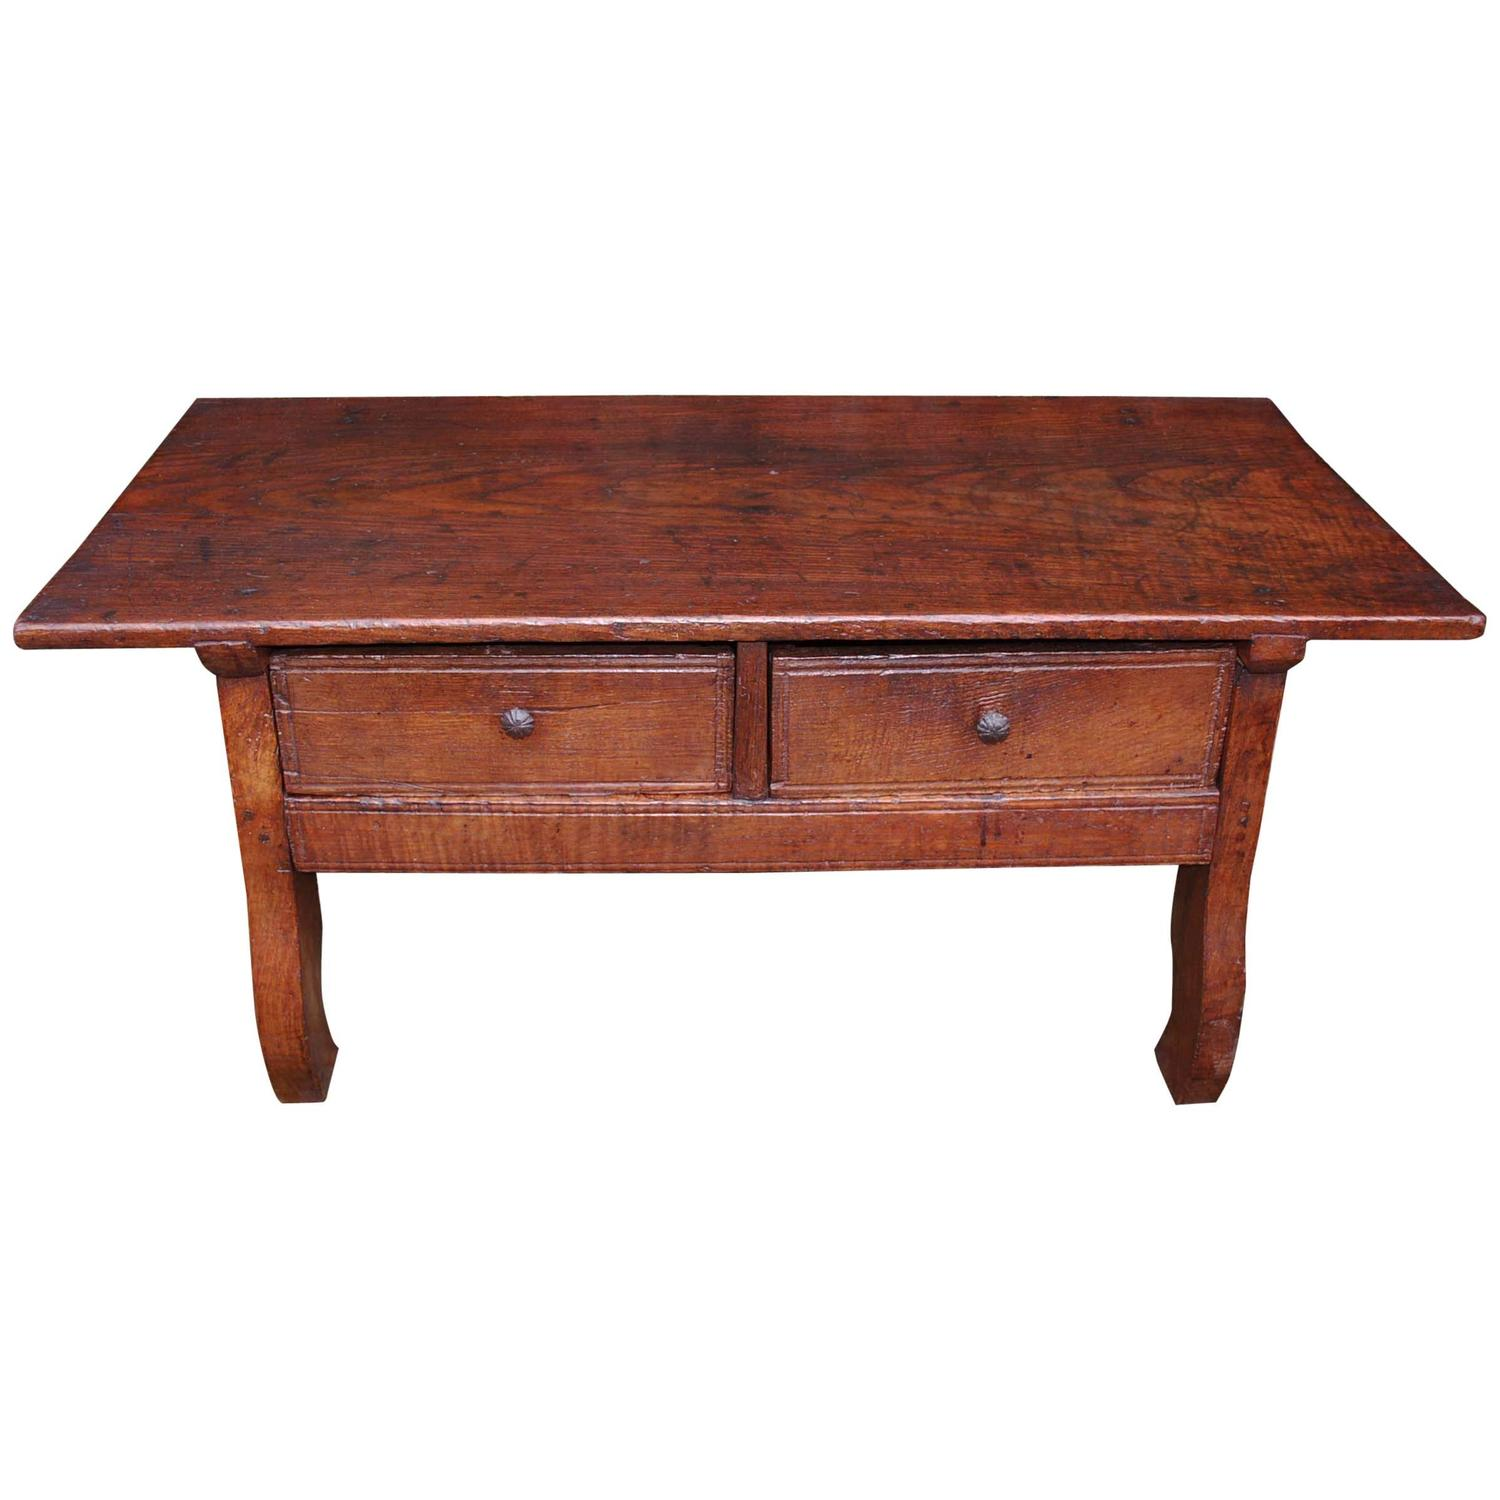 19th Century Walnut Wooden Low Table Or Coffee Table Made In Spain At 1stdibs